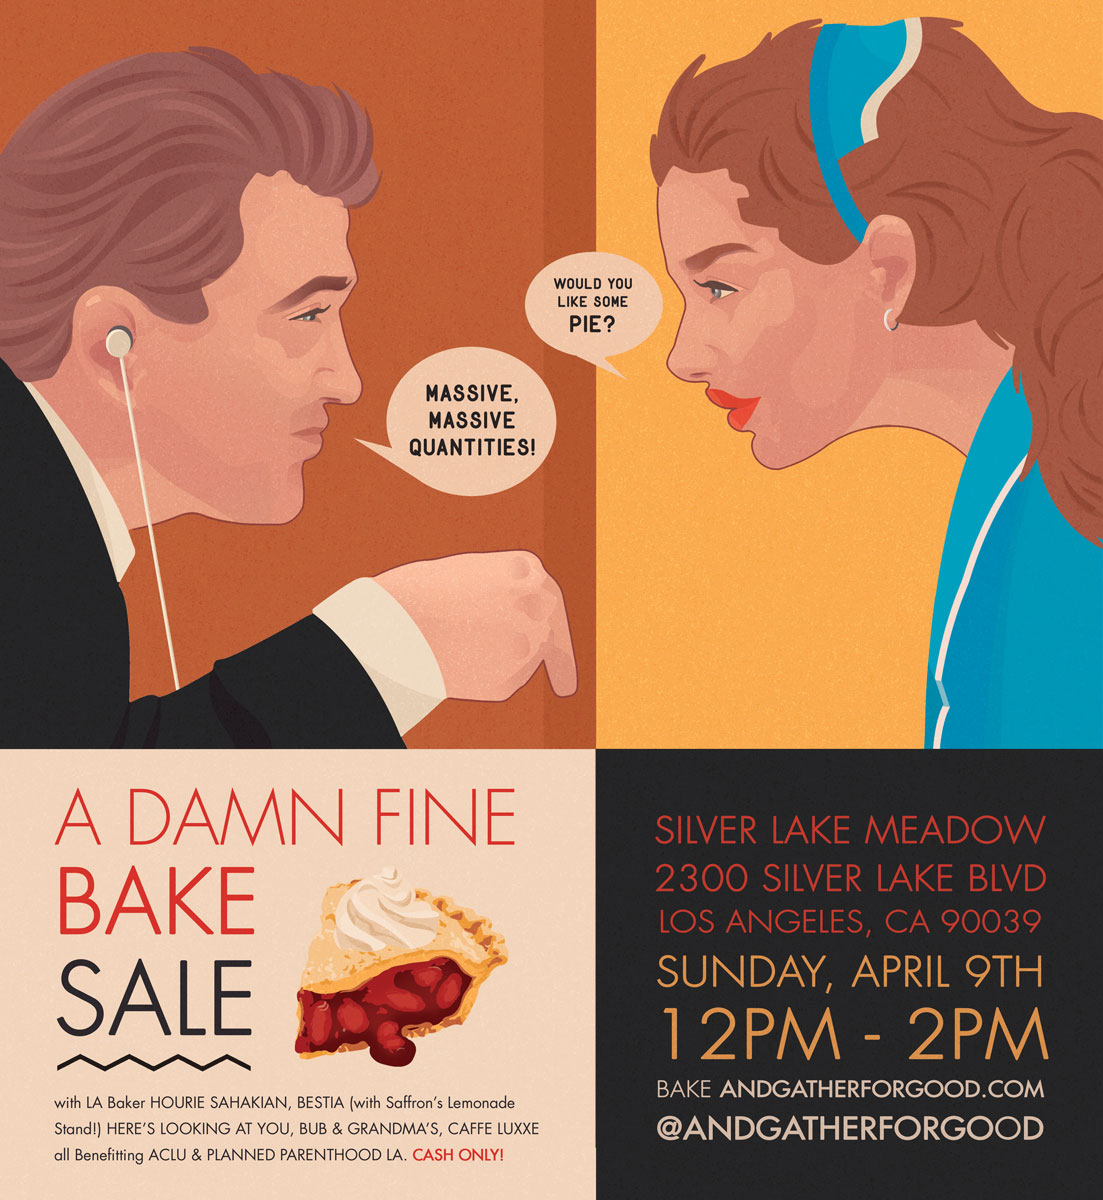 """Image is an illustration depicting """"A Damn Fine Bake Sale"""", a fundraiser and an example of the past work with nonprofits that Here's Looking at You has participated in."""